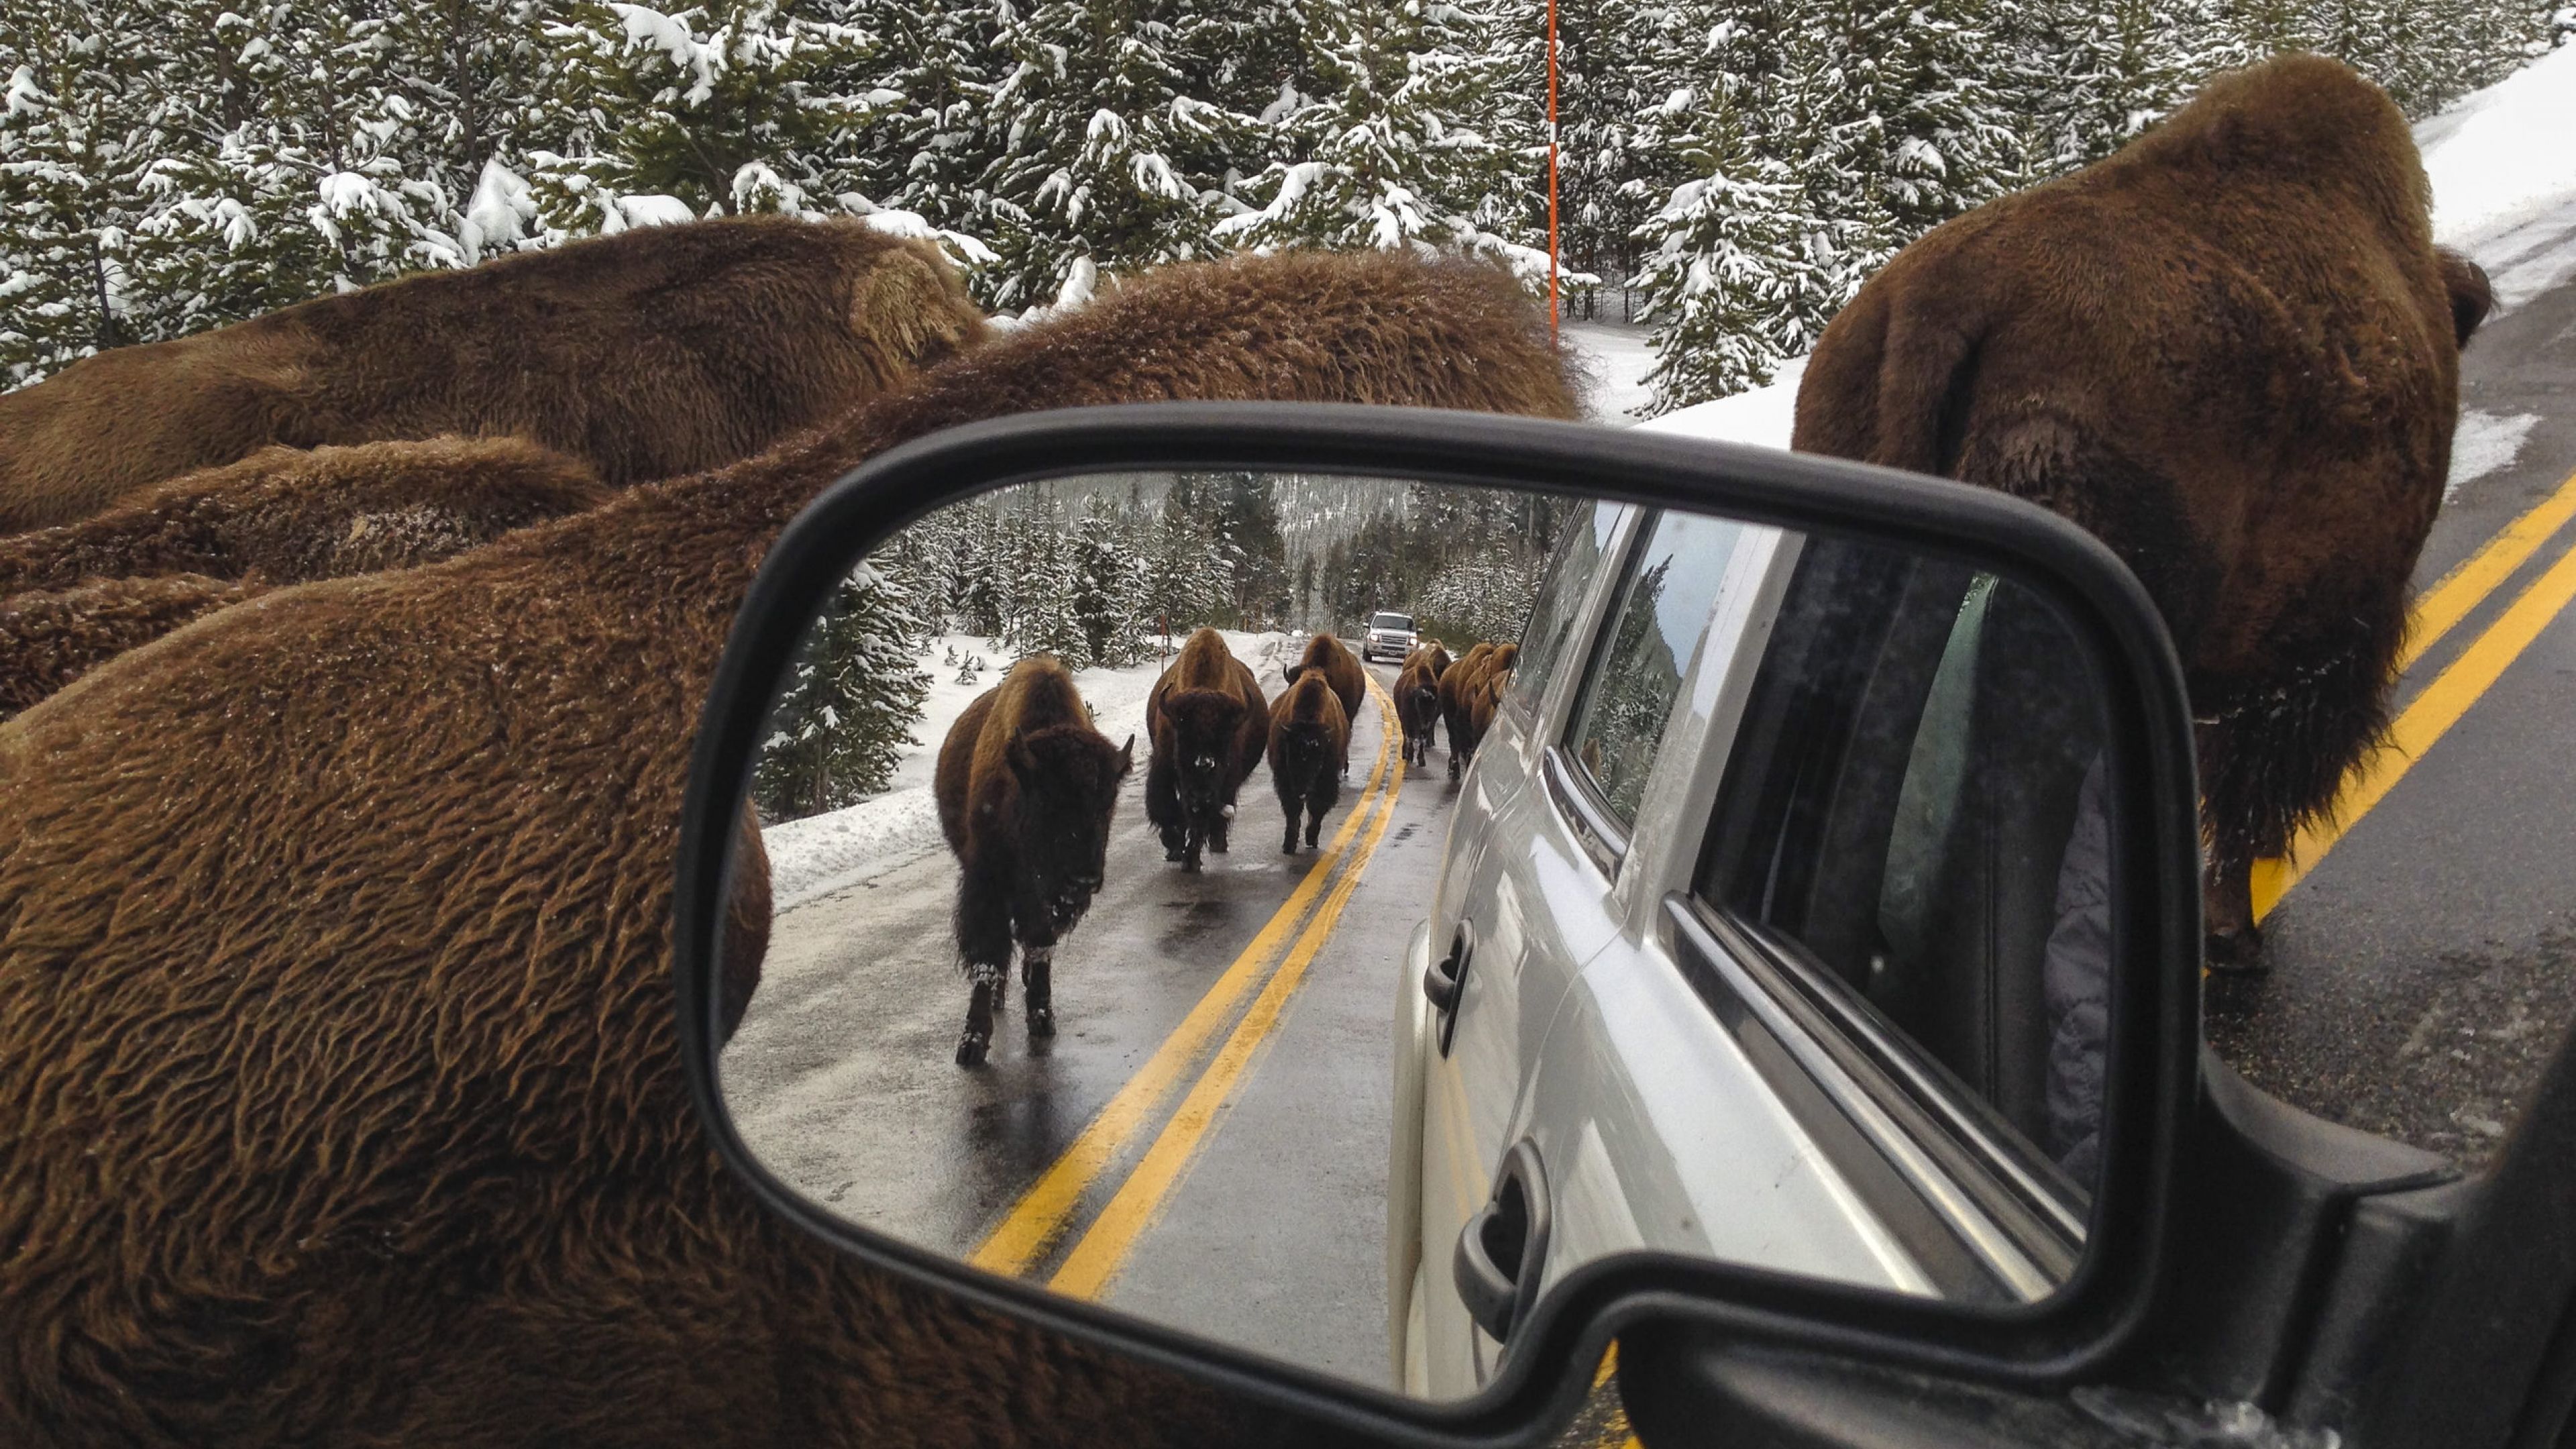 View of bison in snowy forest from a car in the rear view mirror